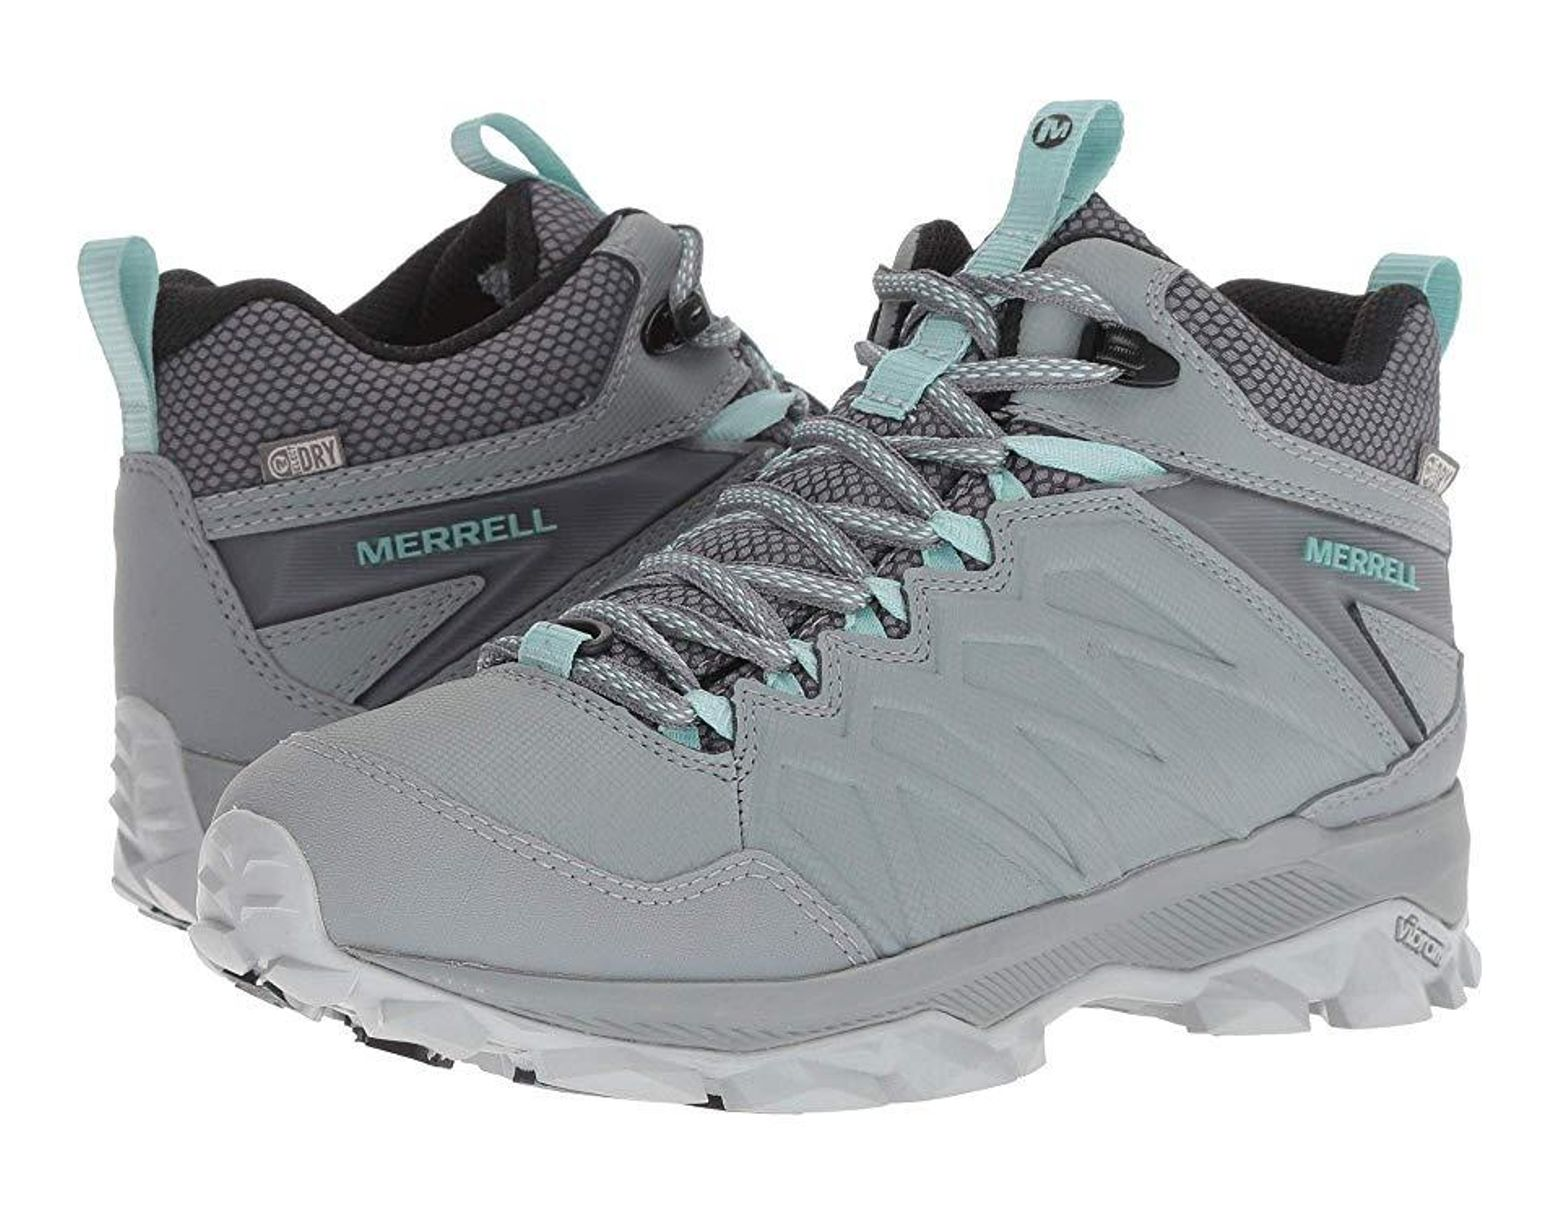 3ffd6fd7619 Merrell Thermo Freeze 6 Waterproof (monument) Hiking Boots in Gray ...